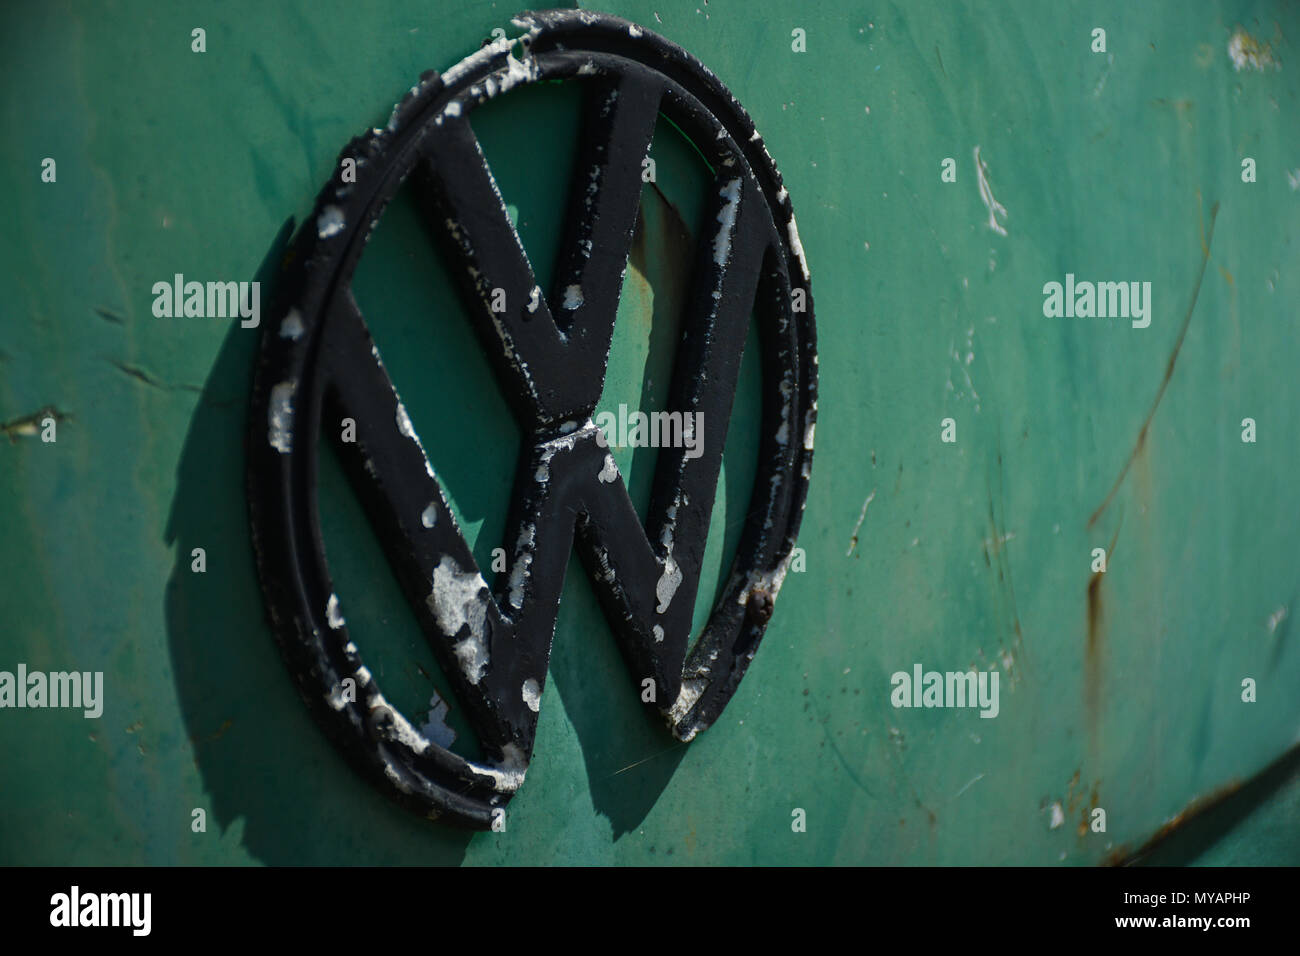 Rusty VW oldtimers. - Stock Image